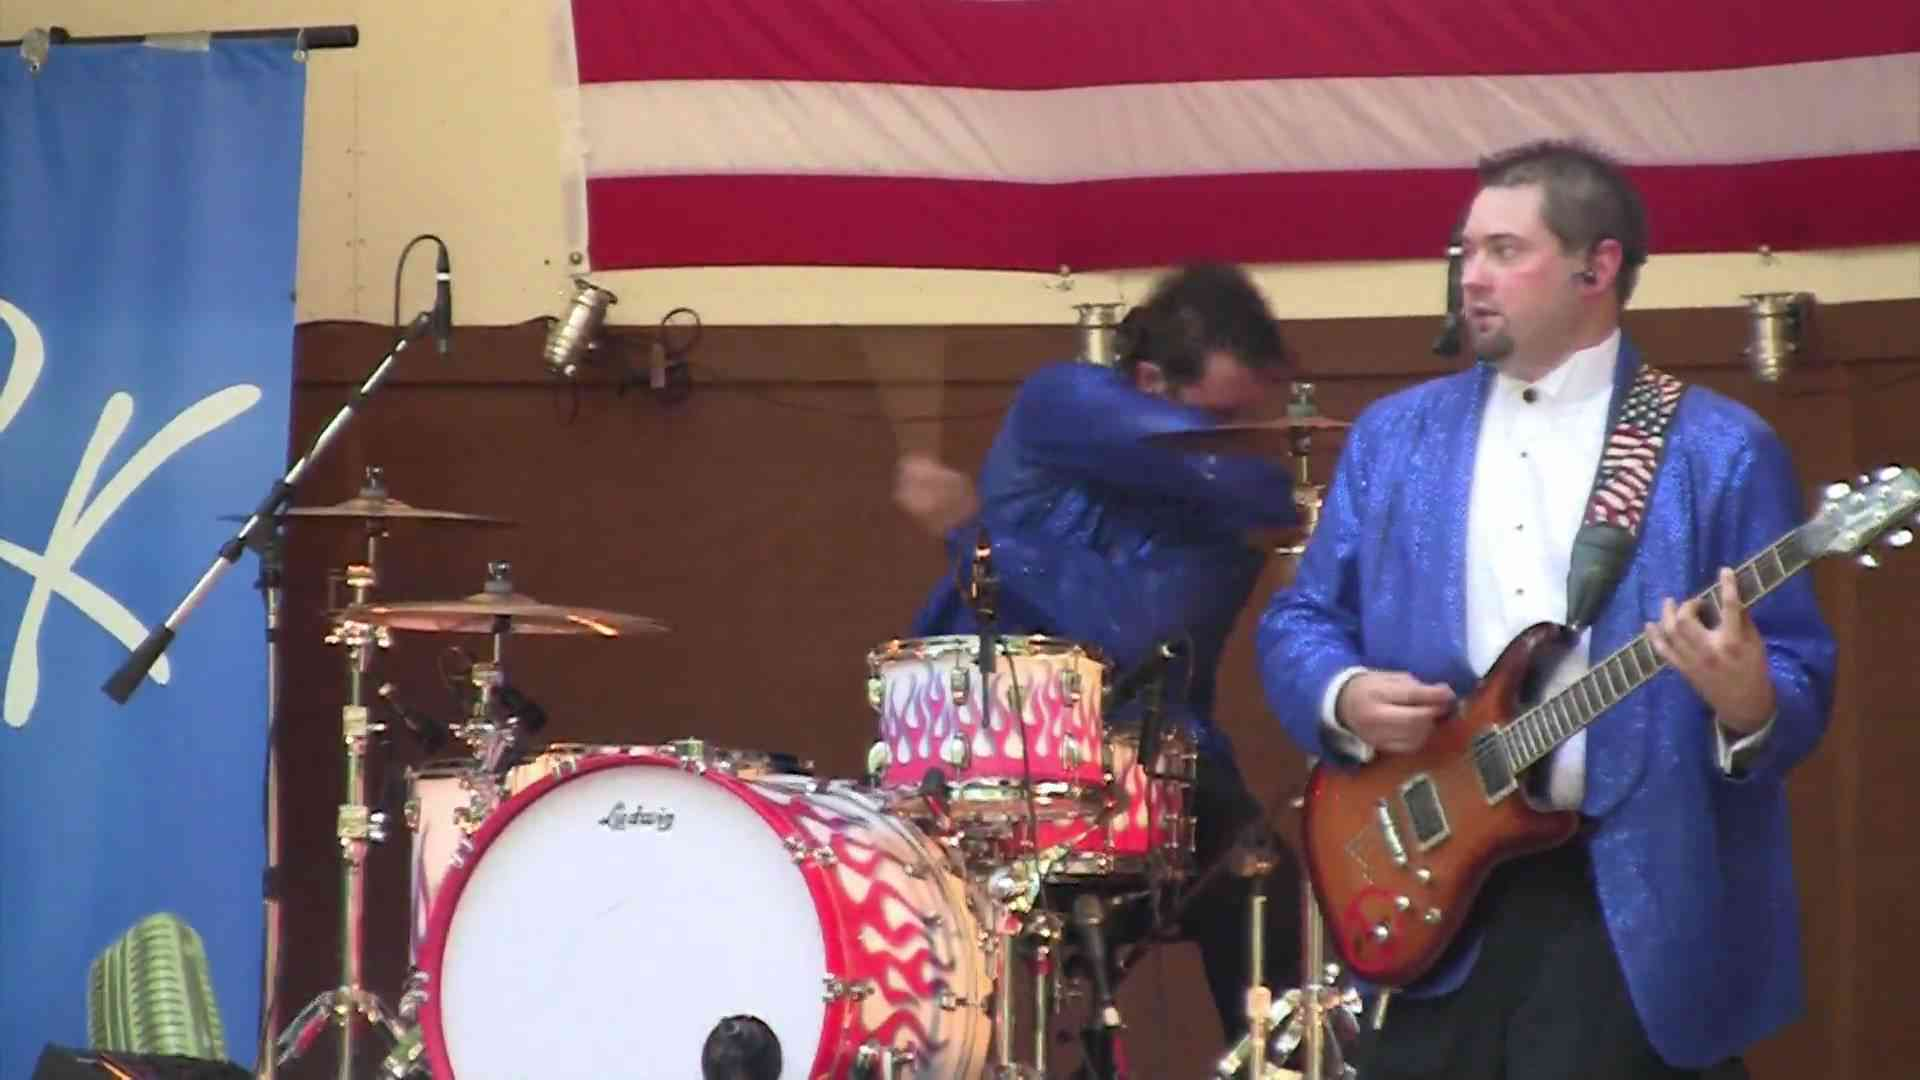 The Mad Drummer - Steve Moore - Rick K - Old Time Rock N Roll - YouTube